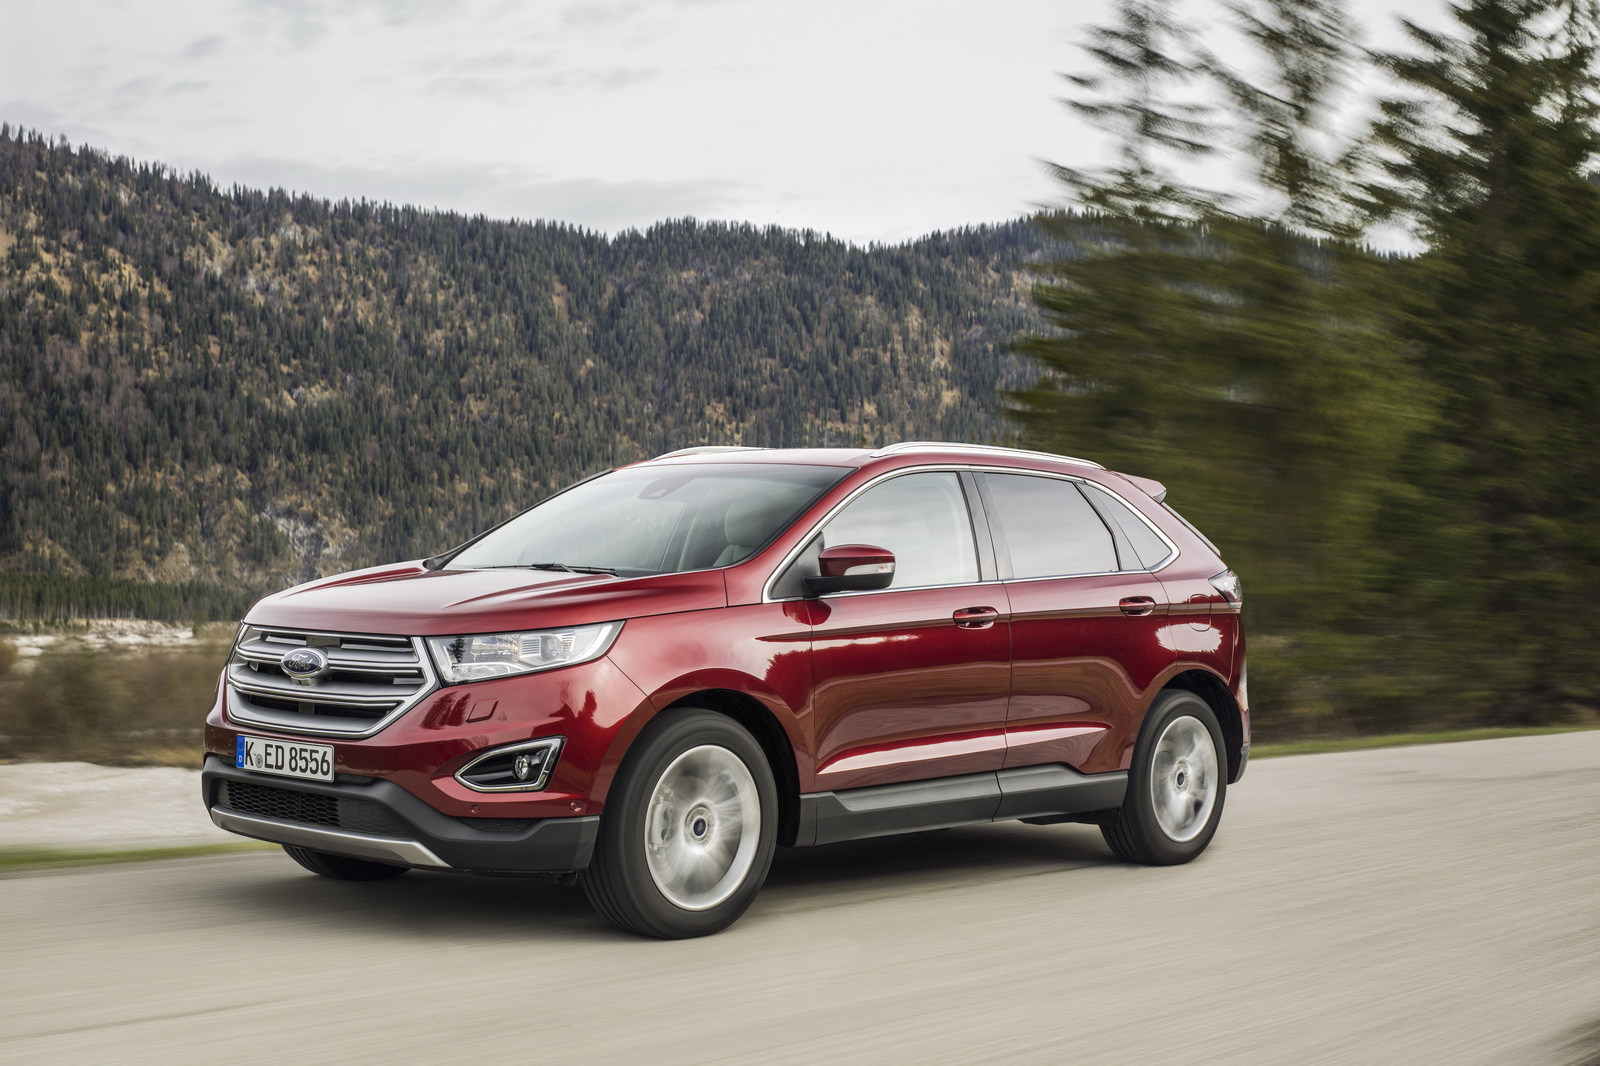 europe s ford edge premium suv hits the market carscoops. Black Bedroom Furniture Sets. Home Design Ideas